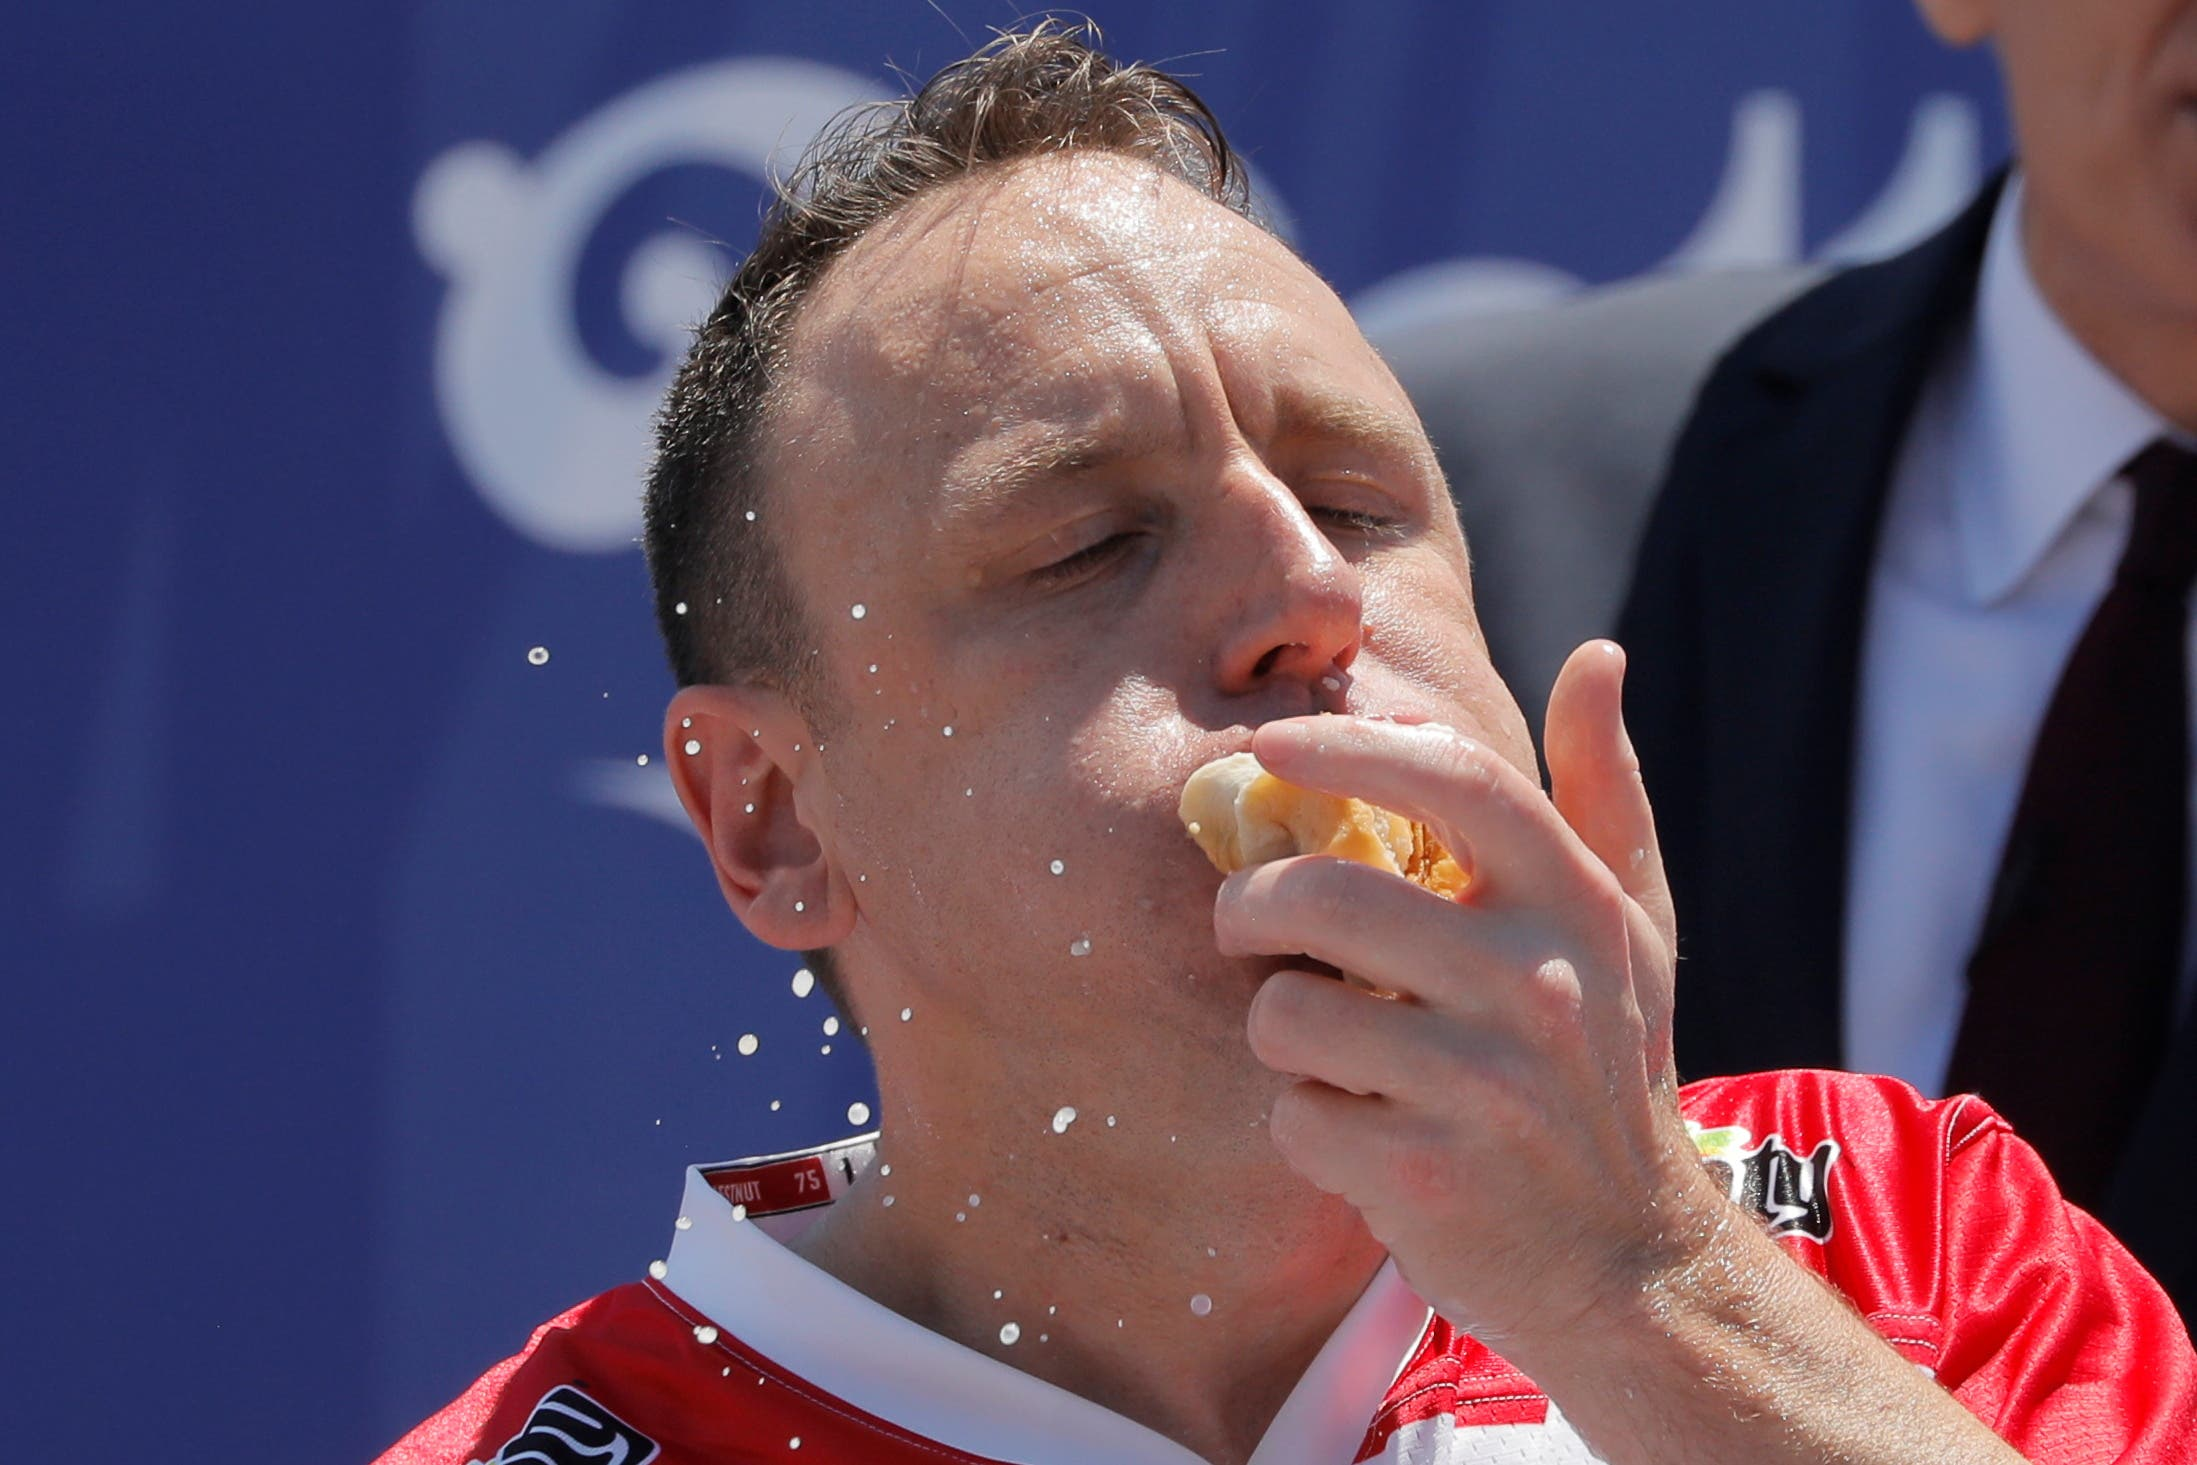 Joey Chestnut competes during Nathan's Famous Fourth of July Hot Dog-Eating Contest held at Maimonides Park in New York City, New York, US, July 4, 2021. (Reuters)